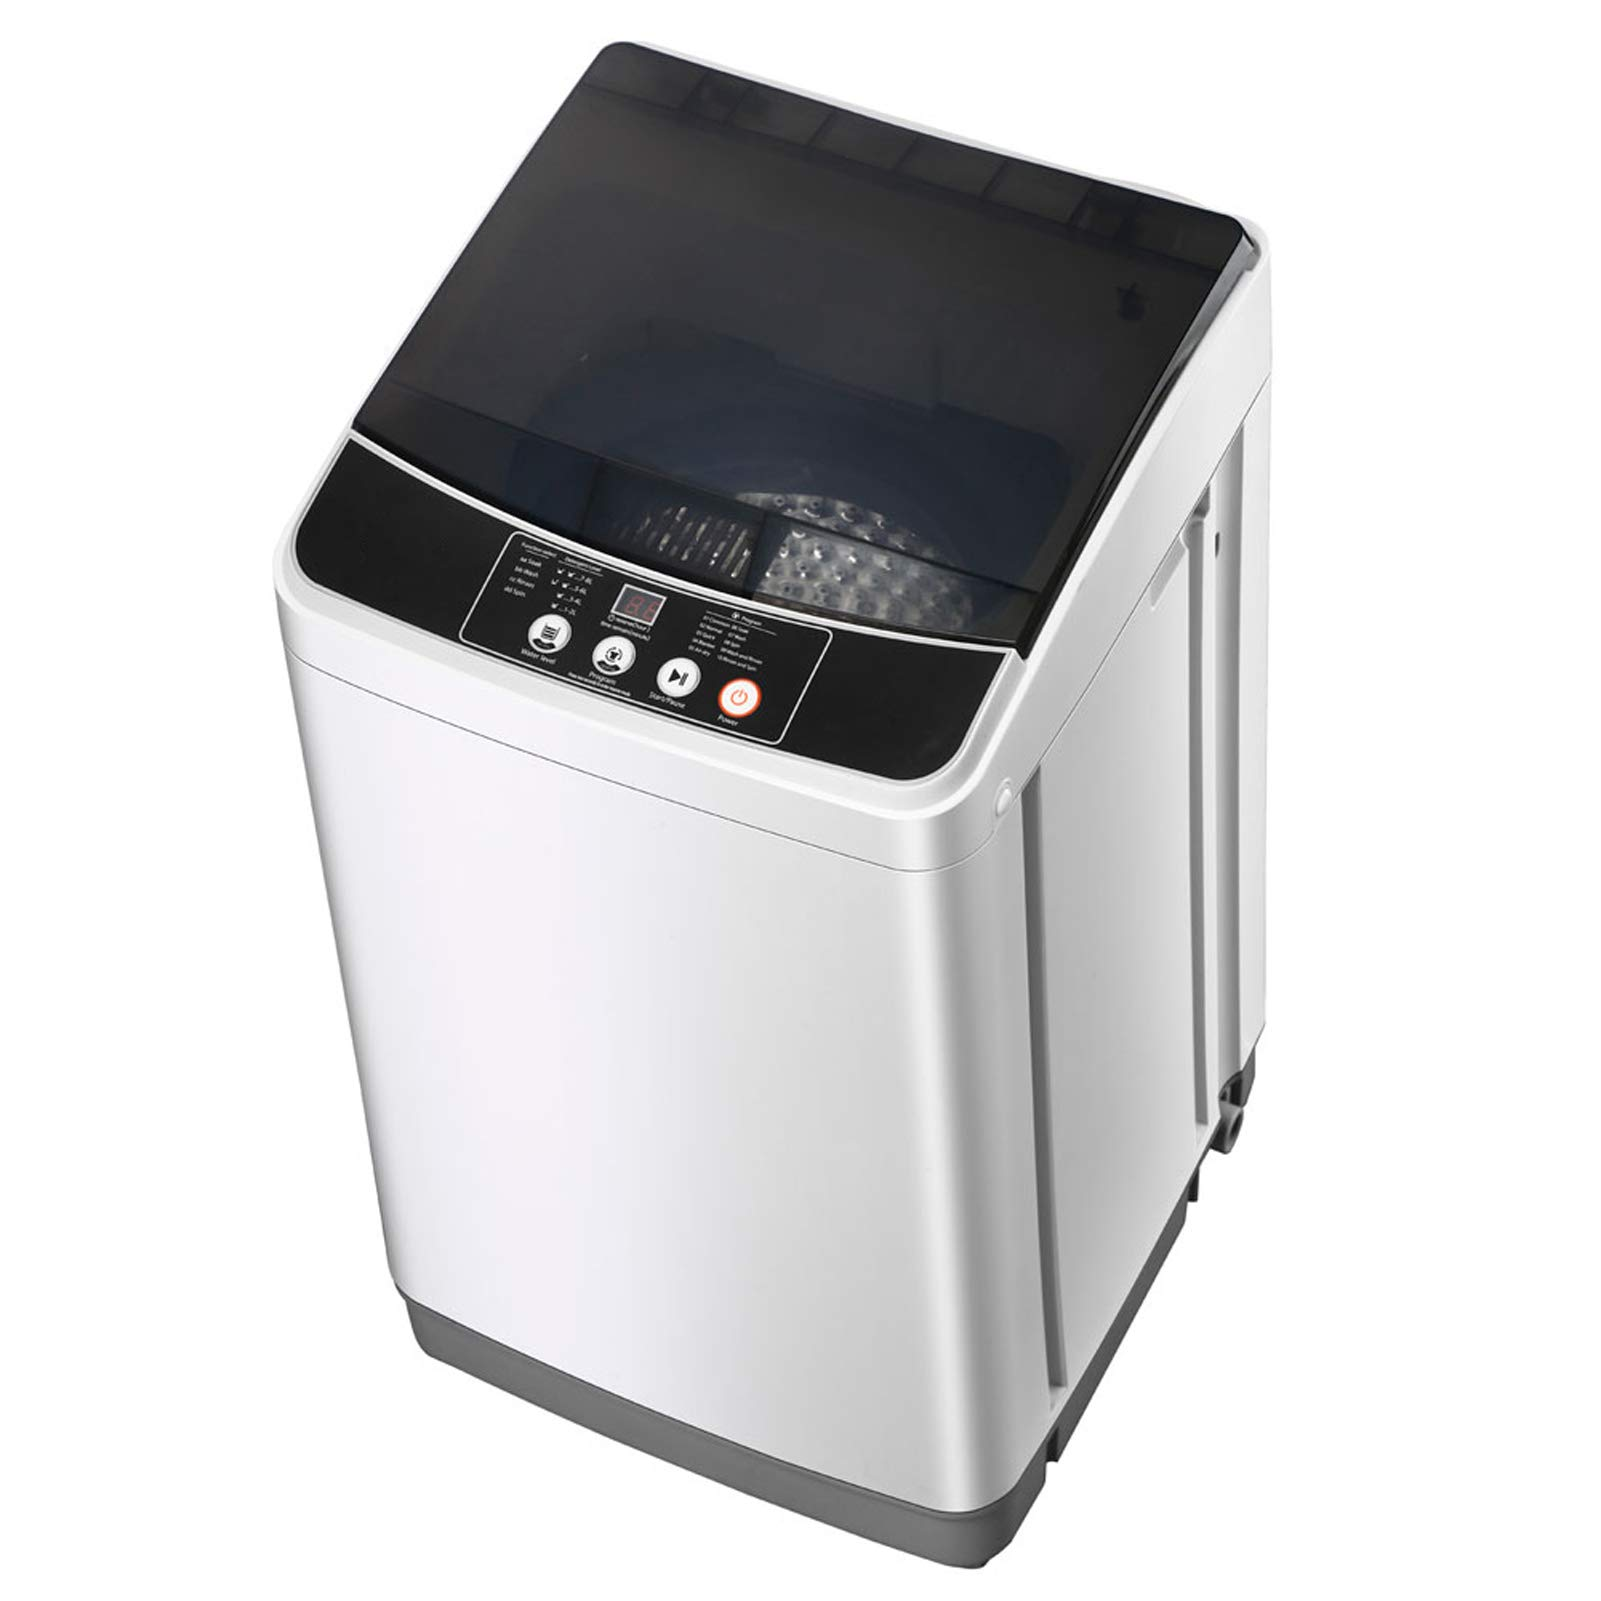 Portable Washing Machine with Spin Dryer, 10lbs Automatic Portable Washer Dryer Combo, 10 Programs 8 Water Level, LED Display, Laundry Machine w/Drain Pump, Clothes Washer for Apartments, RVs, Dorm